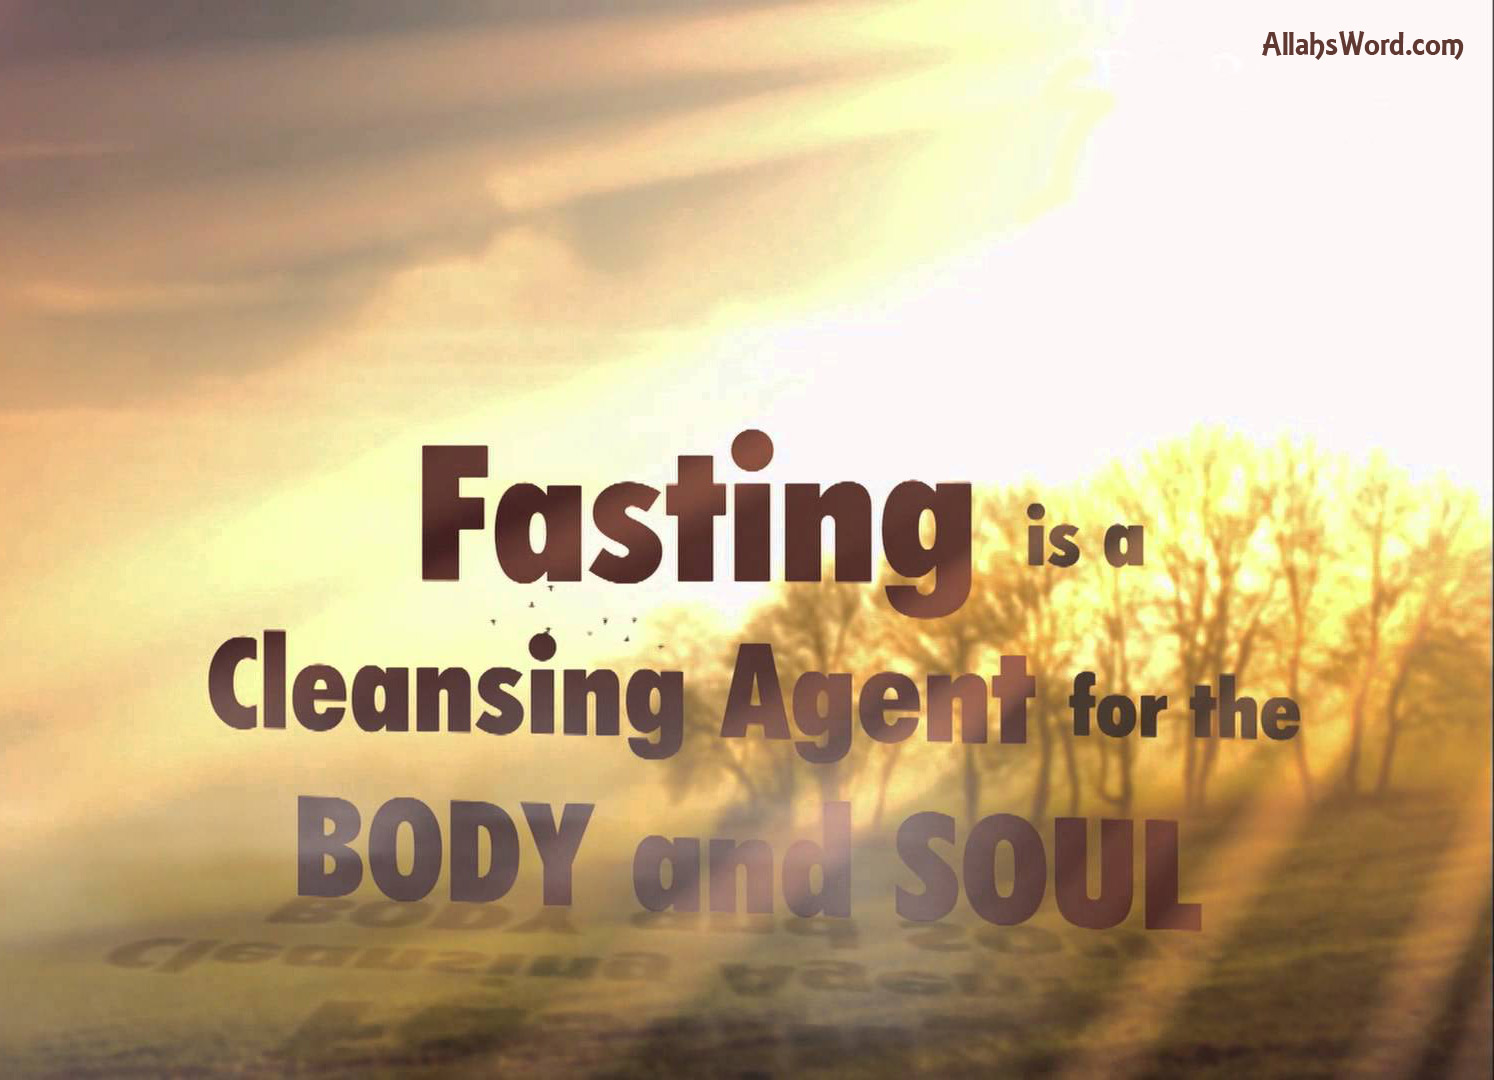 Fasting Islamic Quotes Wallpaper